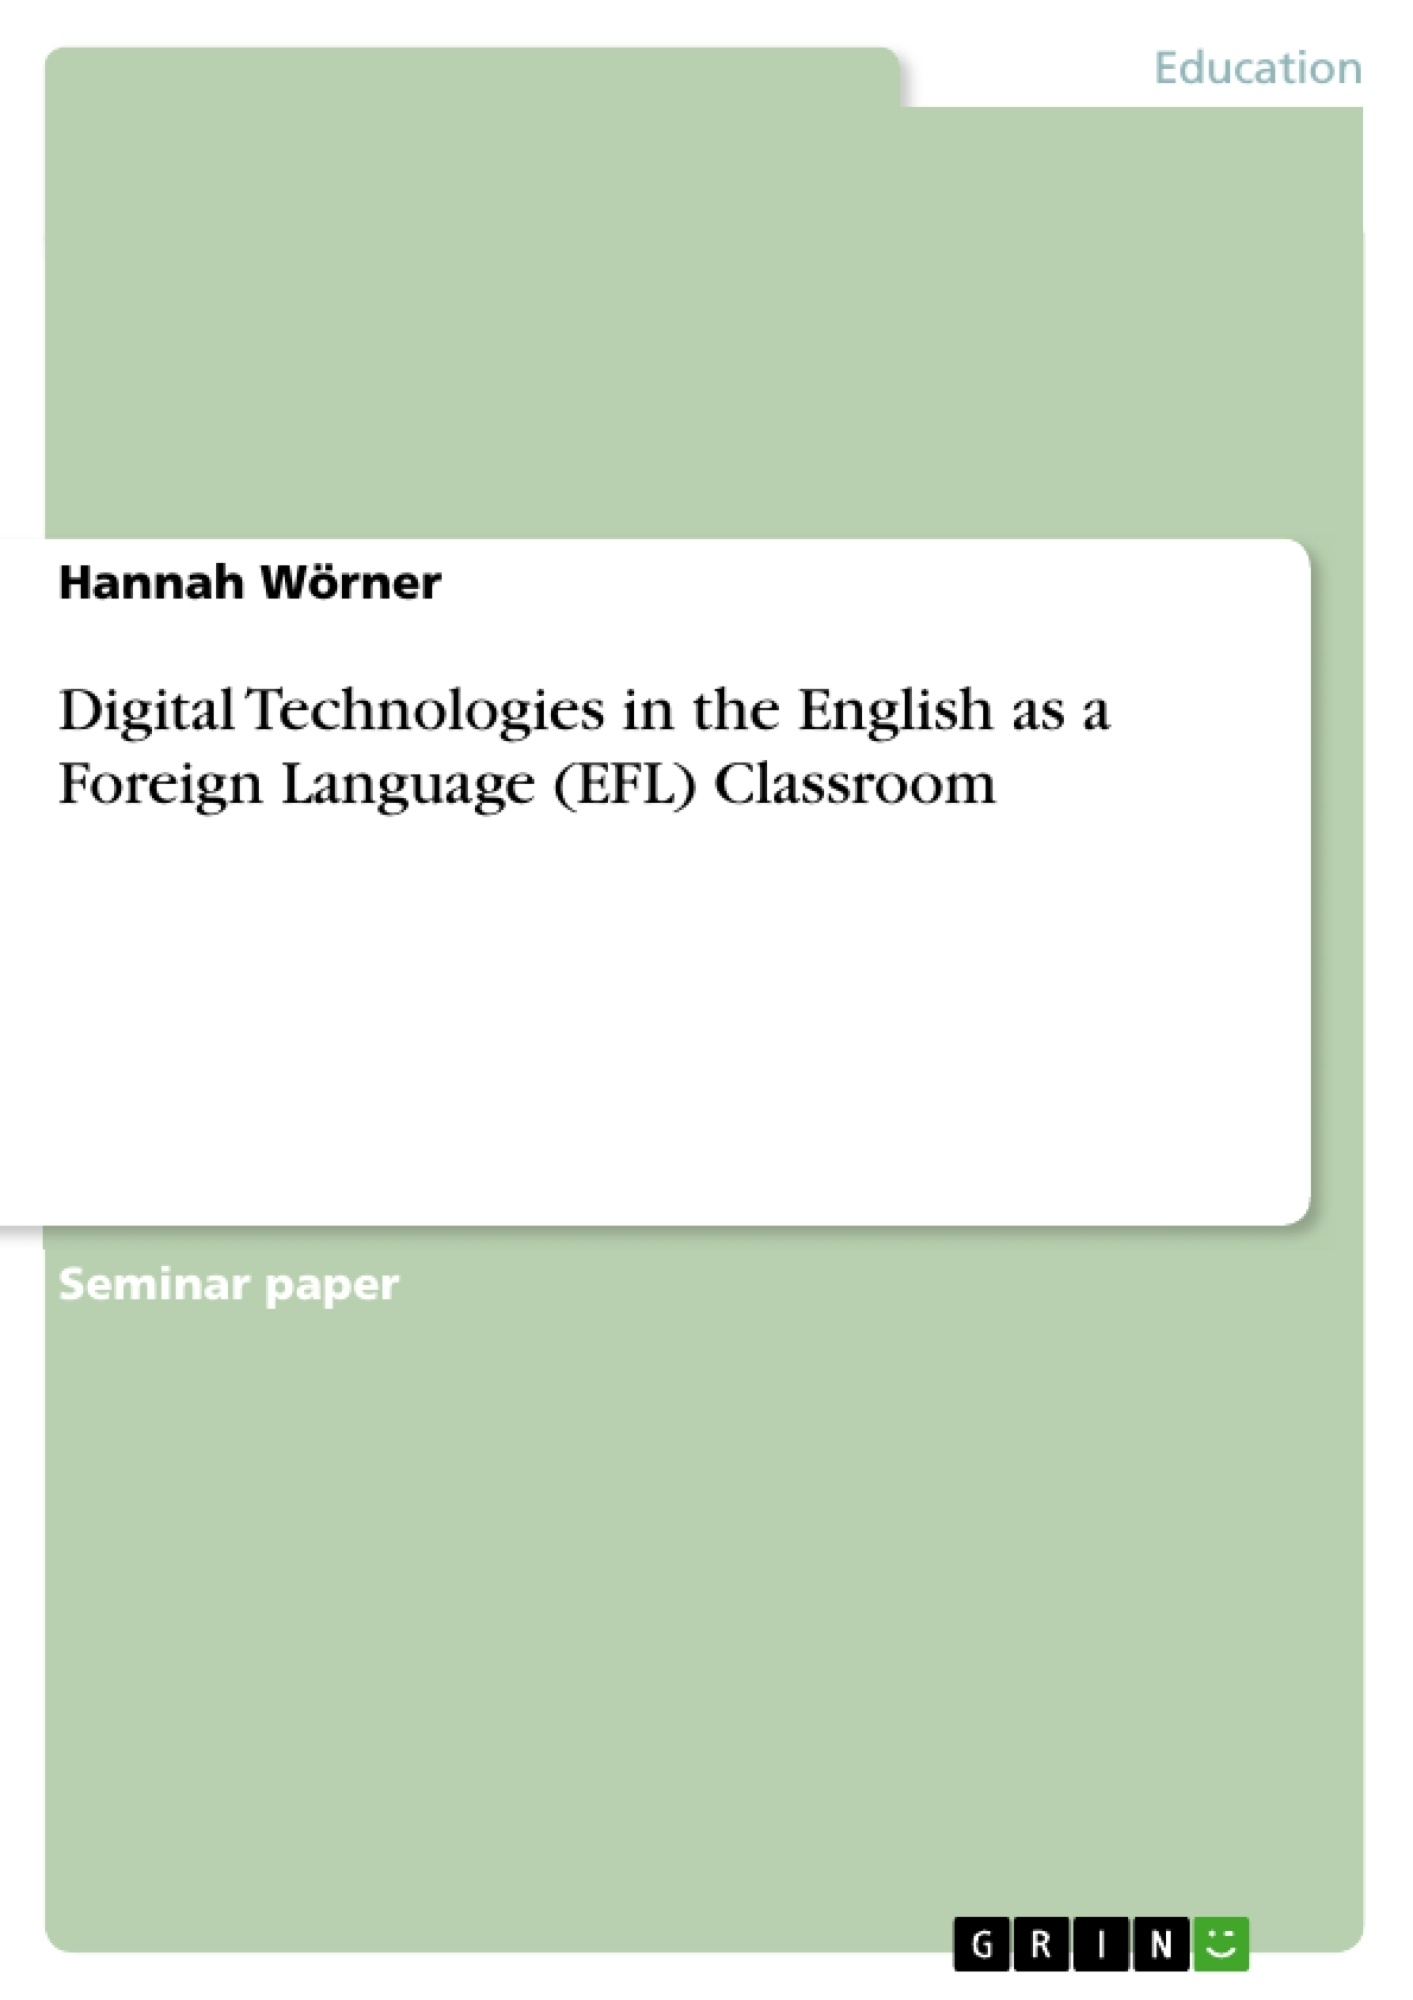 Title: Digital Technologies in the English as a Foreign Language (EFL) Classroom